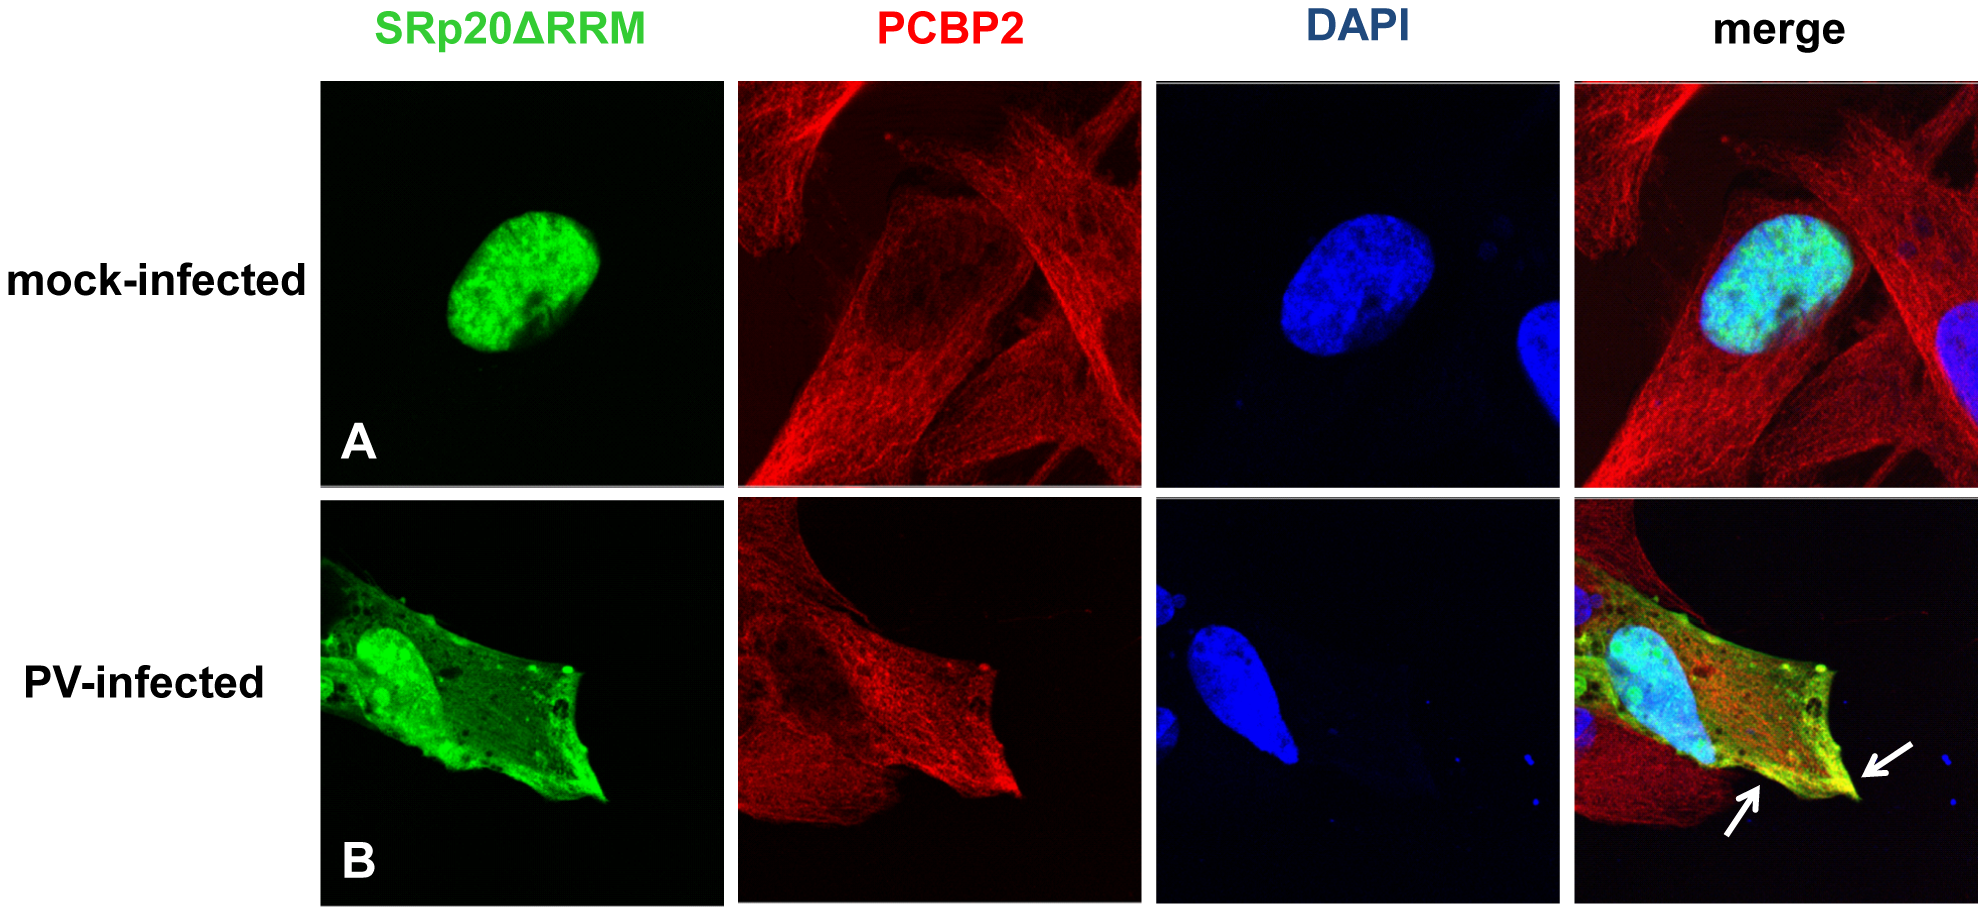 SRp20ΔRRM partial co-localization with PCBP2 in the cytoplasm of poliovirus-infected SK-N-SH cells.